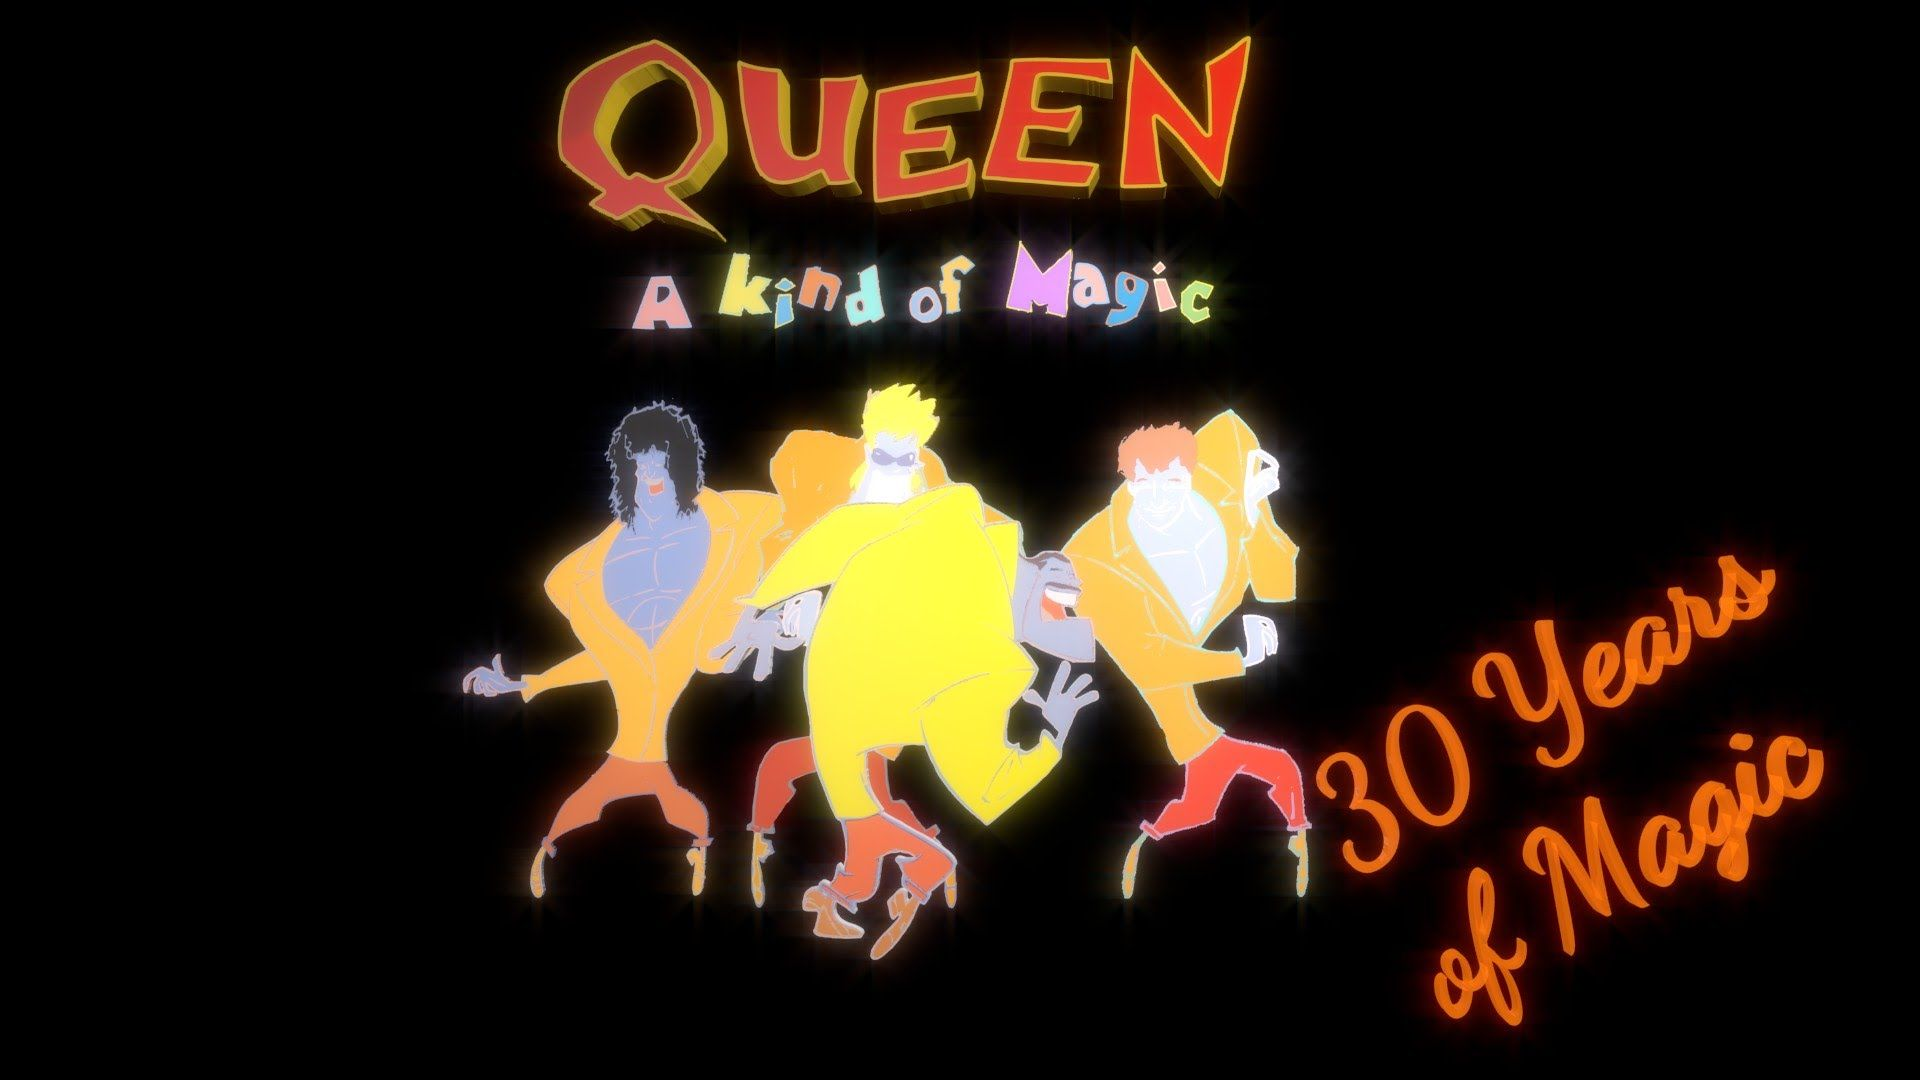 30 Years Of Magic Akom Queen A Kind Of Magic Celebration A Kind Of Magic Princes Of The Universe 30 Years